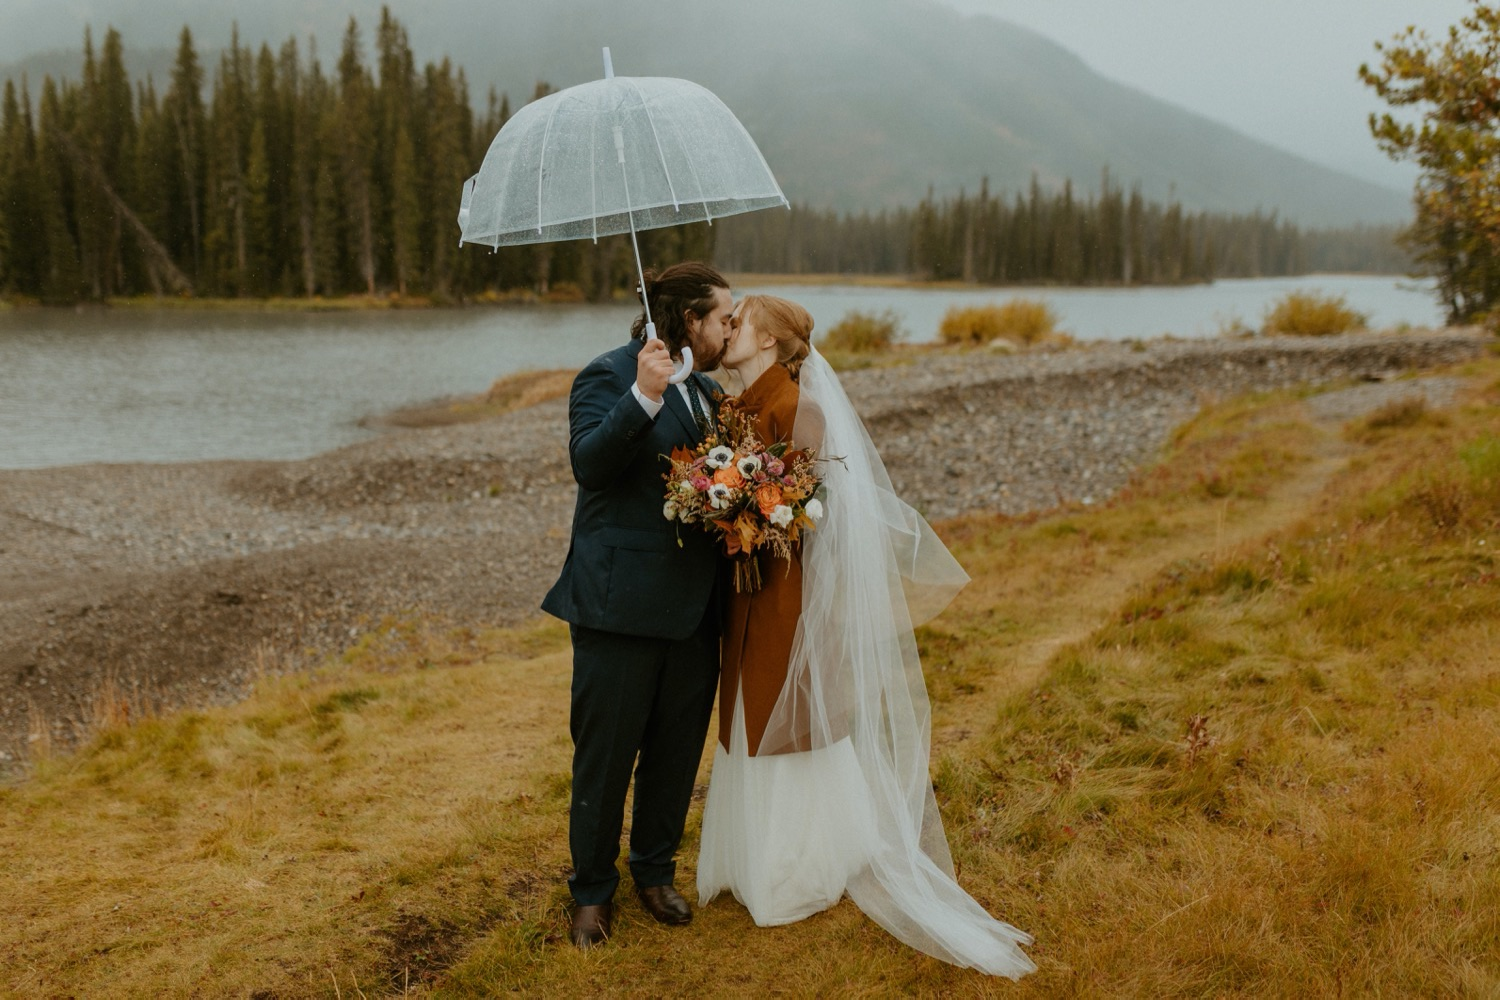 Banff Elopement, Banff Elopement with Family present, Small wedding in Banff, Banff small outdoor wedding, Banff small wedding with friends and family present, how to elope with family present, family elopement, Banff summer elopement, Banff fall wedding, Ceremony in Canmore, Wedding Ceremony at Sprays Lake in Canmore, How to get married in Banff, How to get married in canmore, Banff wedding photographer, Banff Elopement Photographer, Wedding near Banff in Canmore